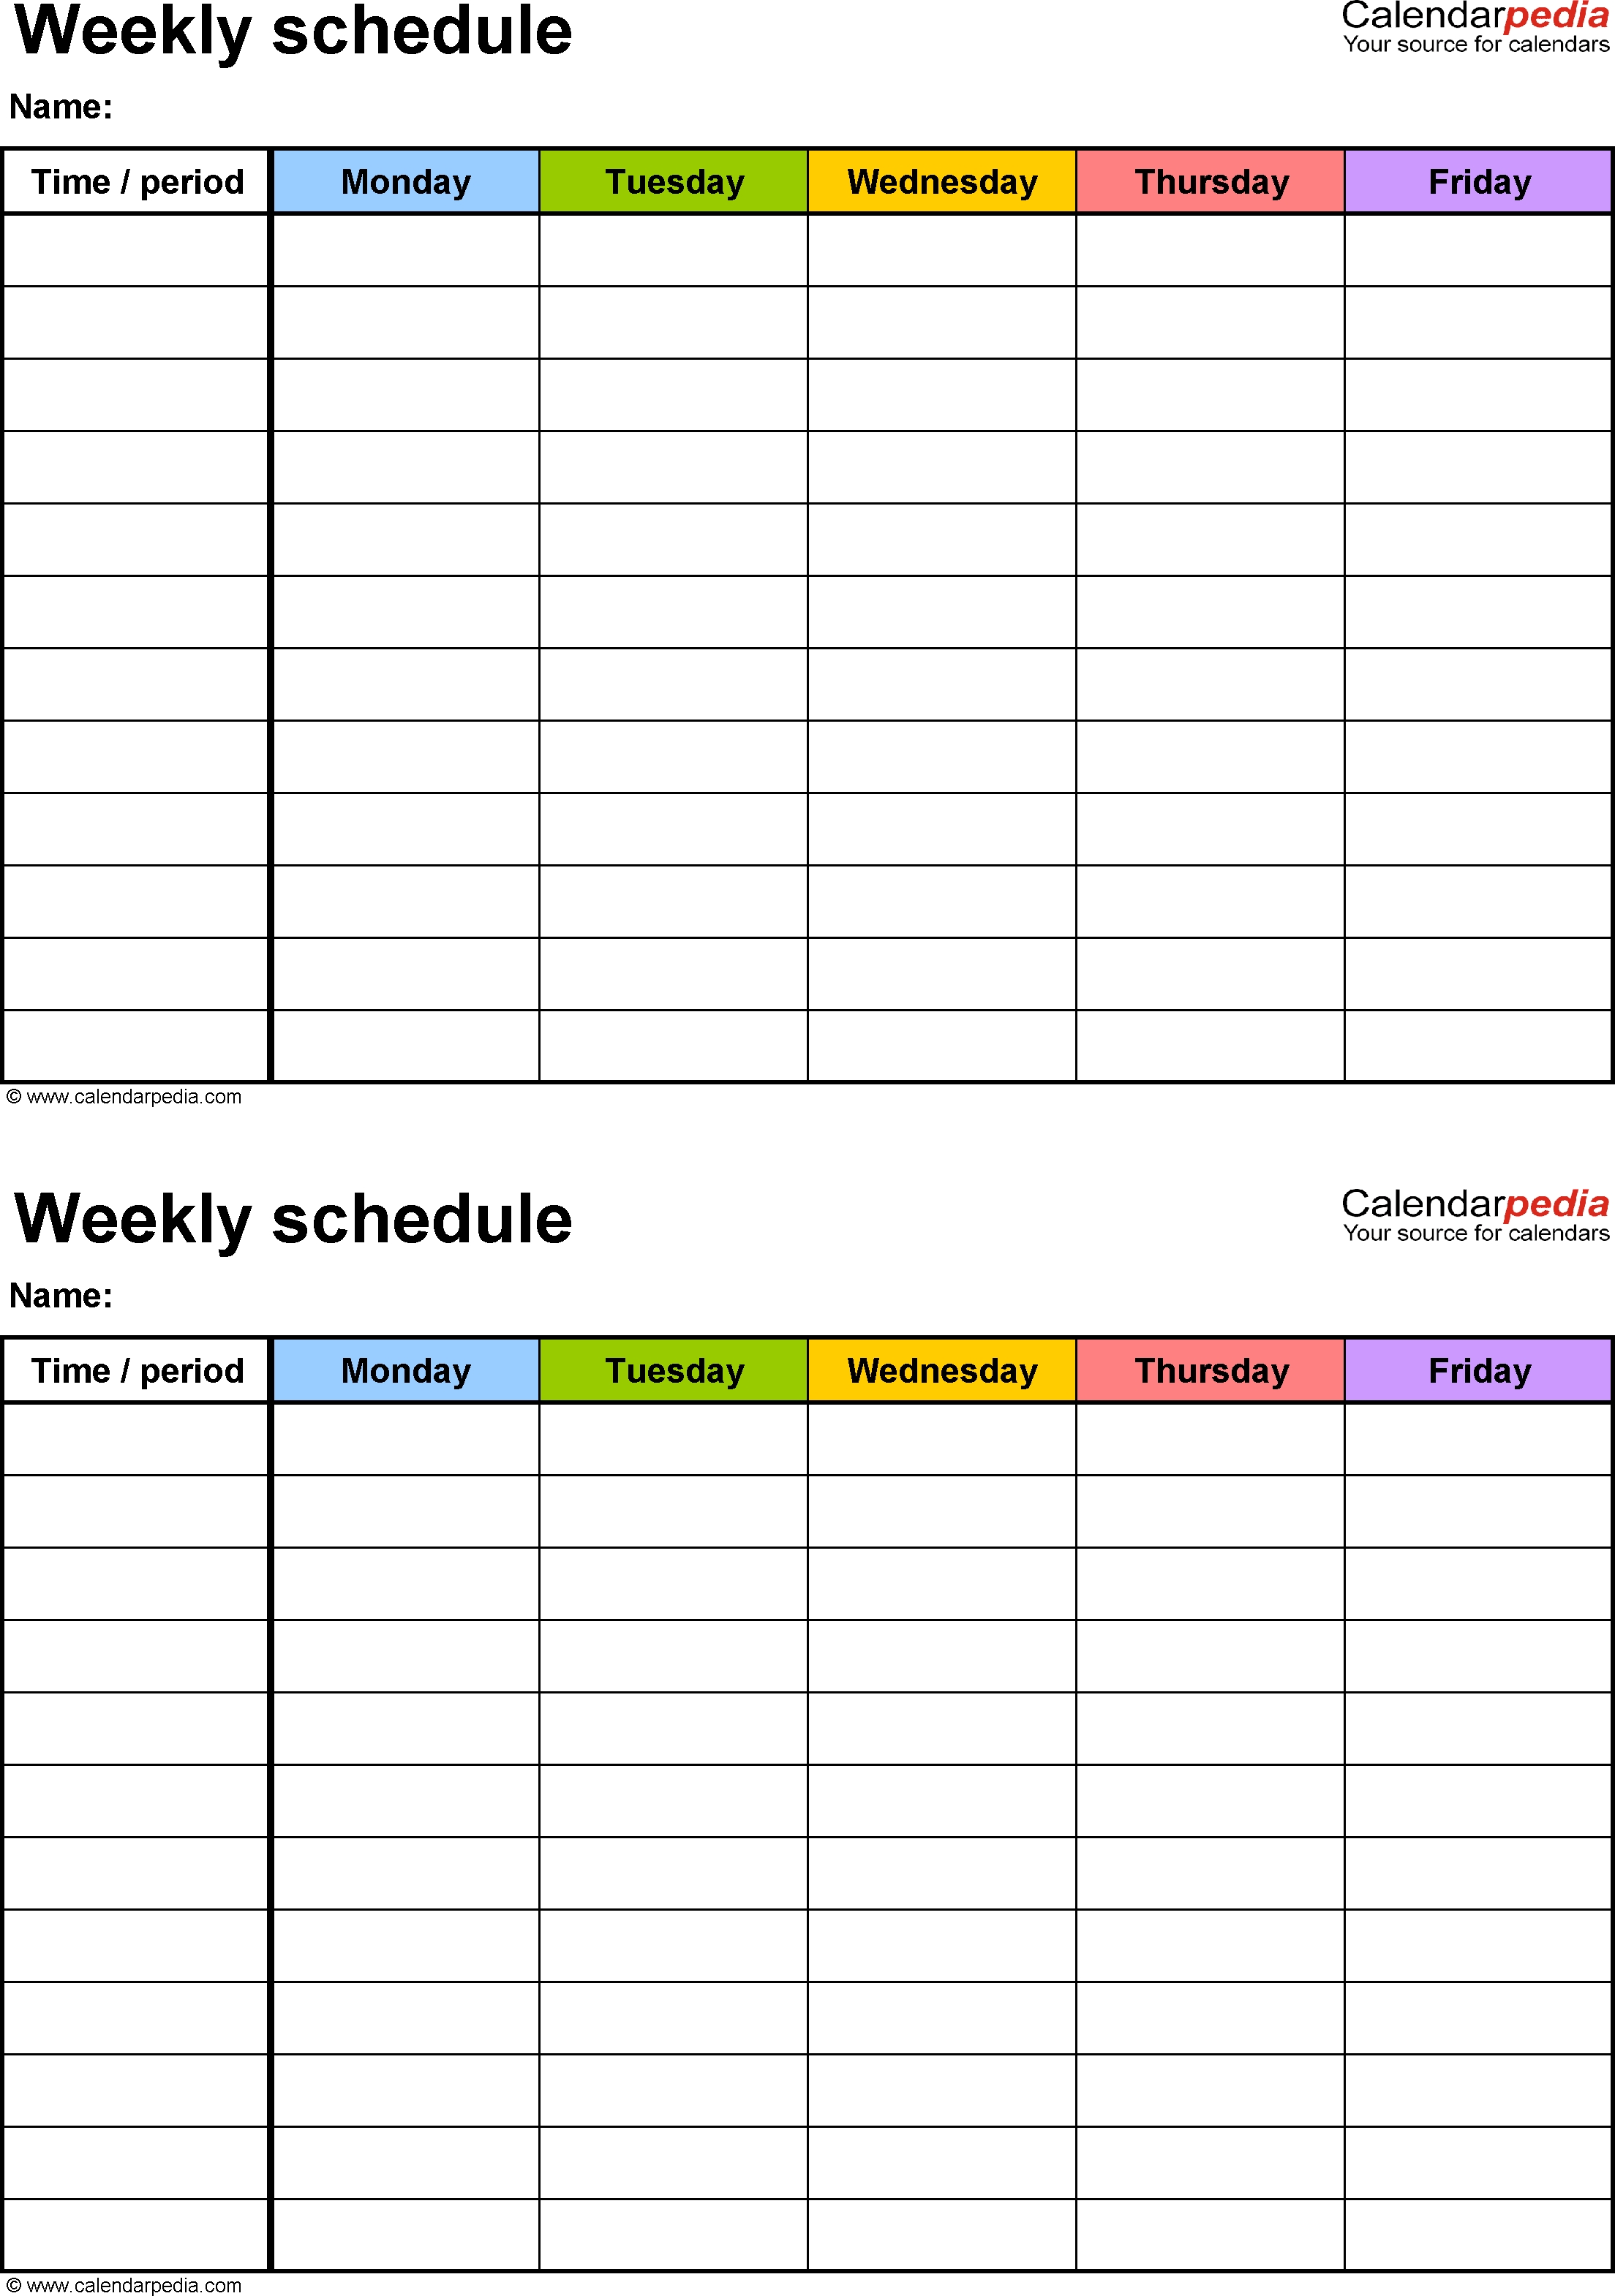 Weekly Schedule Template For Pdf Version 3: 2 Schedules On  Free Daily Schedule Template Excel